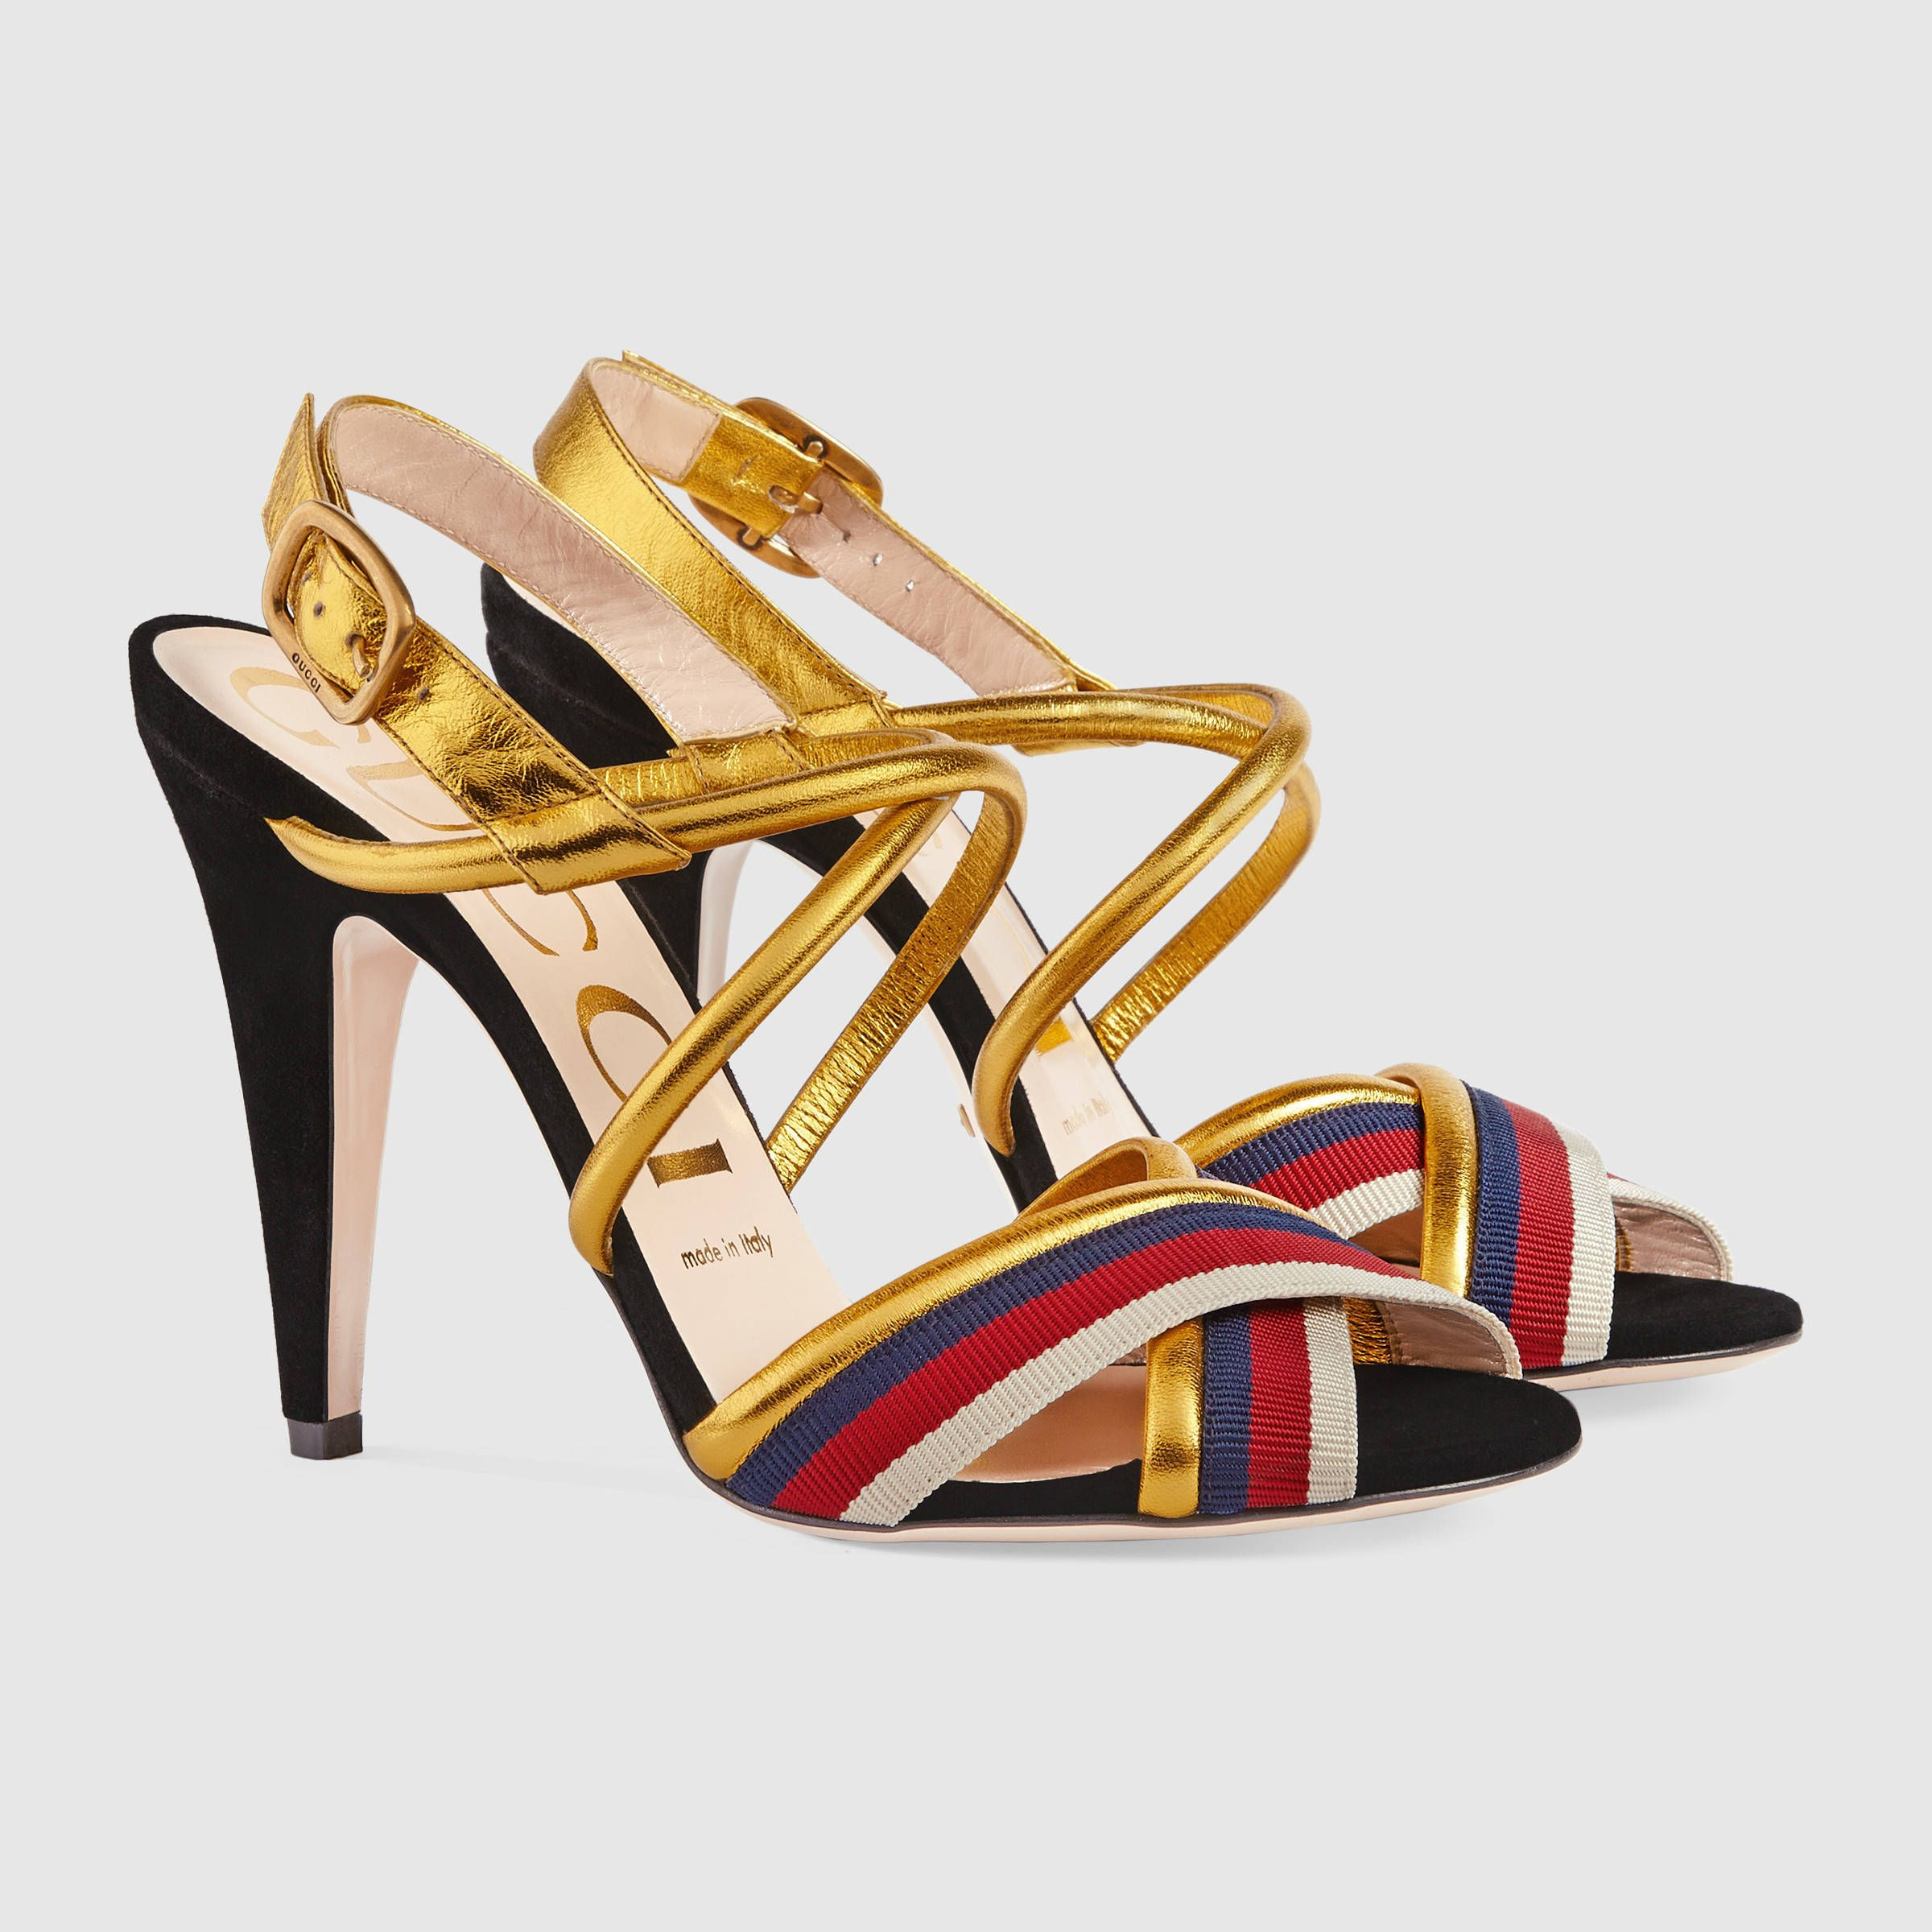 61dd92f4924 Gucci Sylvie metallic leather sandal £530